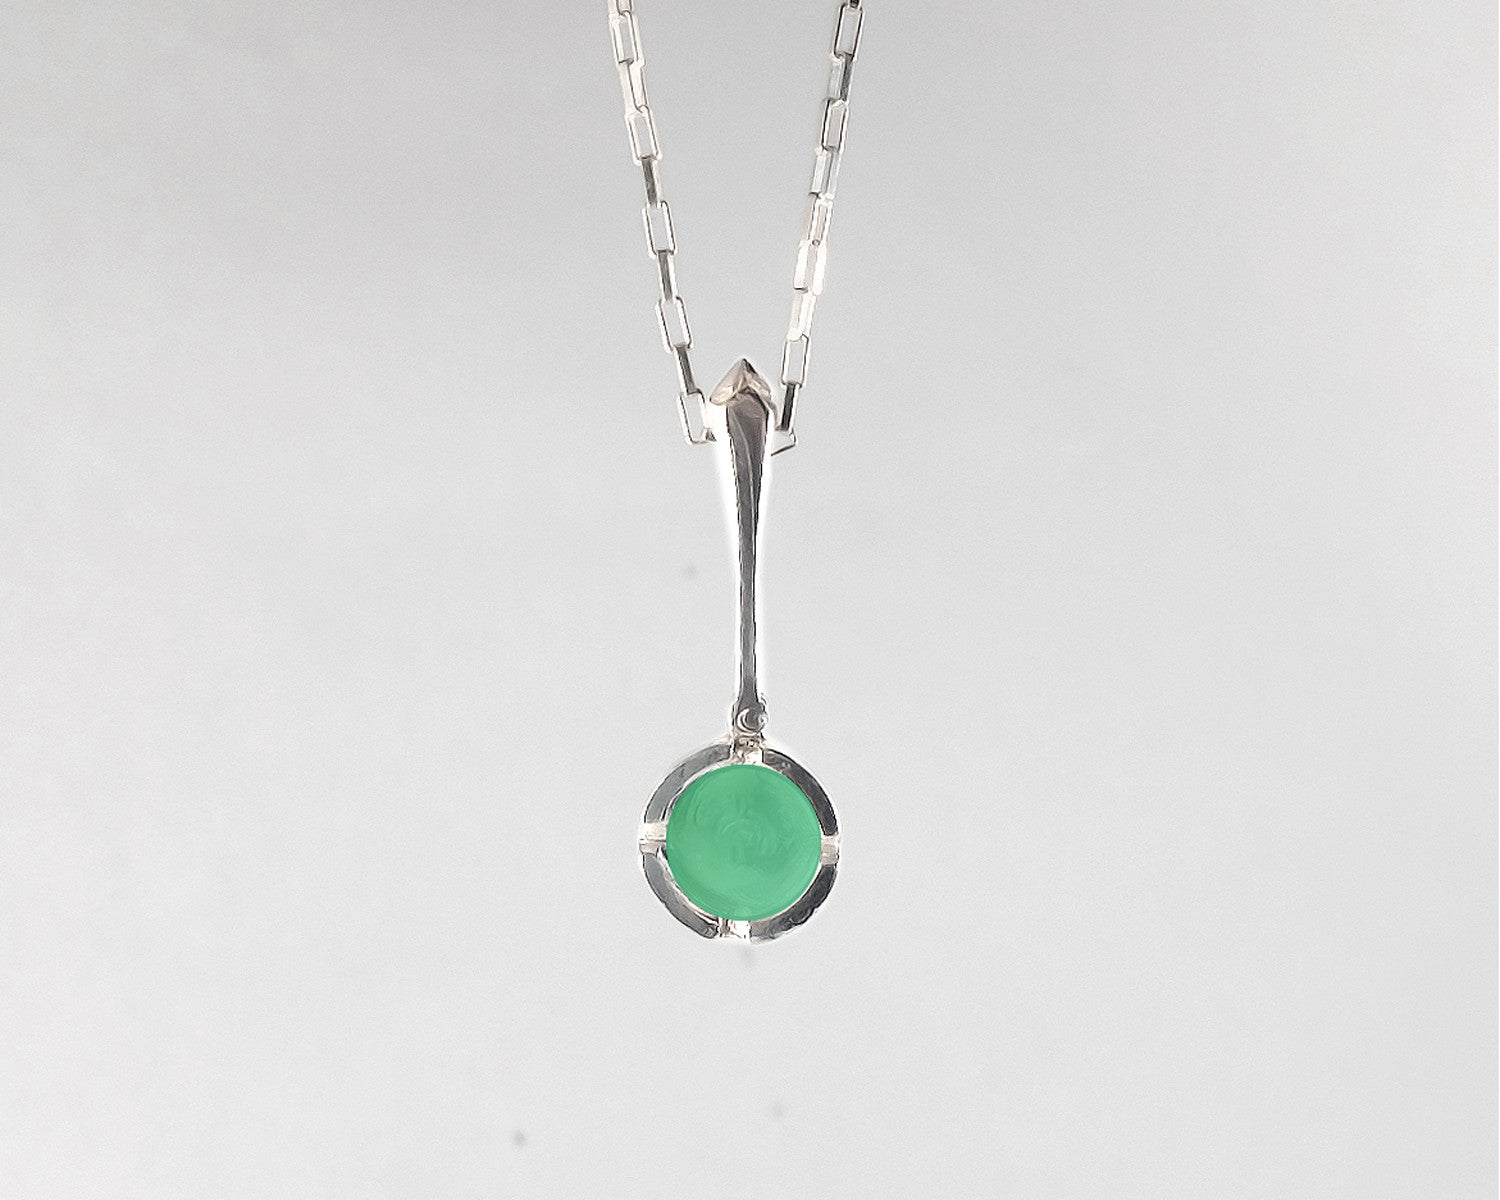 necklace livemaster jewelry on shop chrysoprase online natural item buy handmade with a from stones mermaid